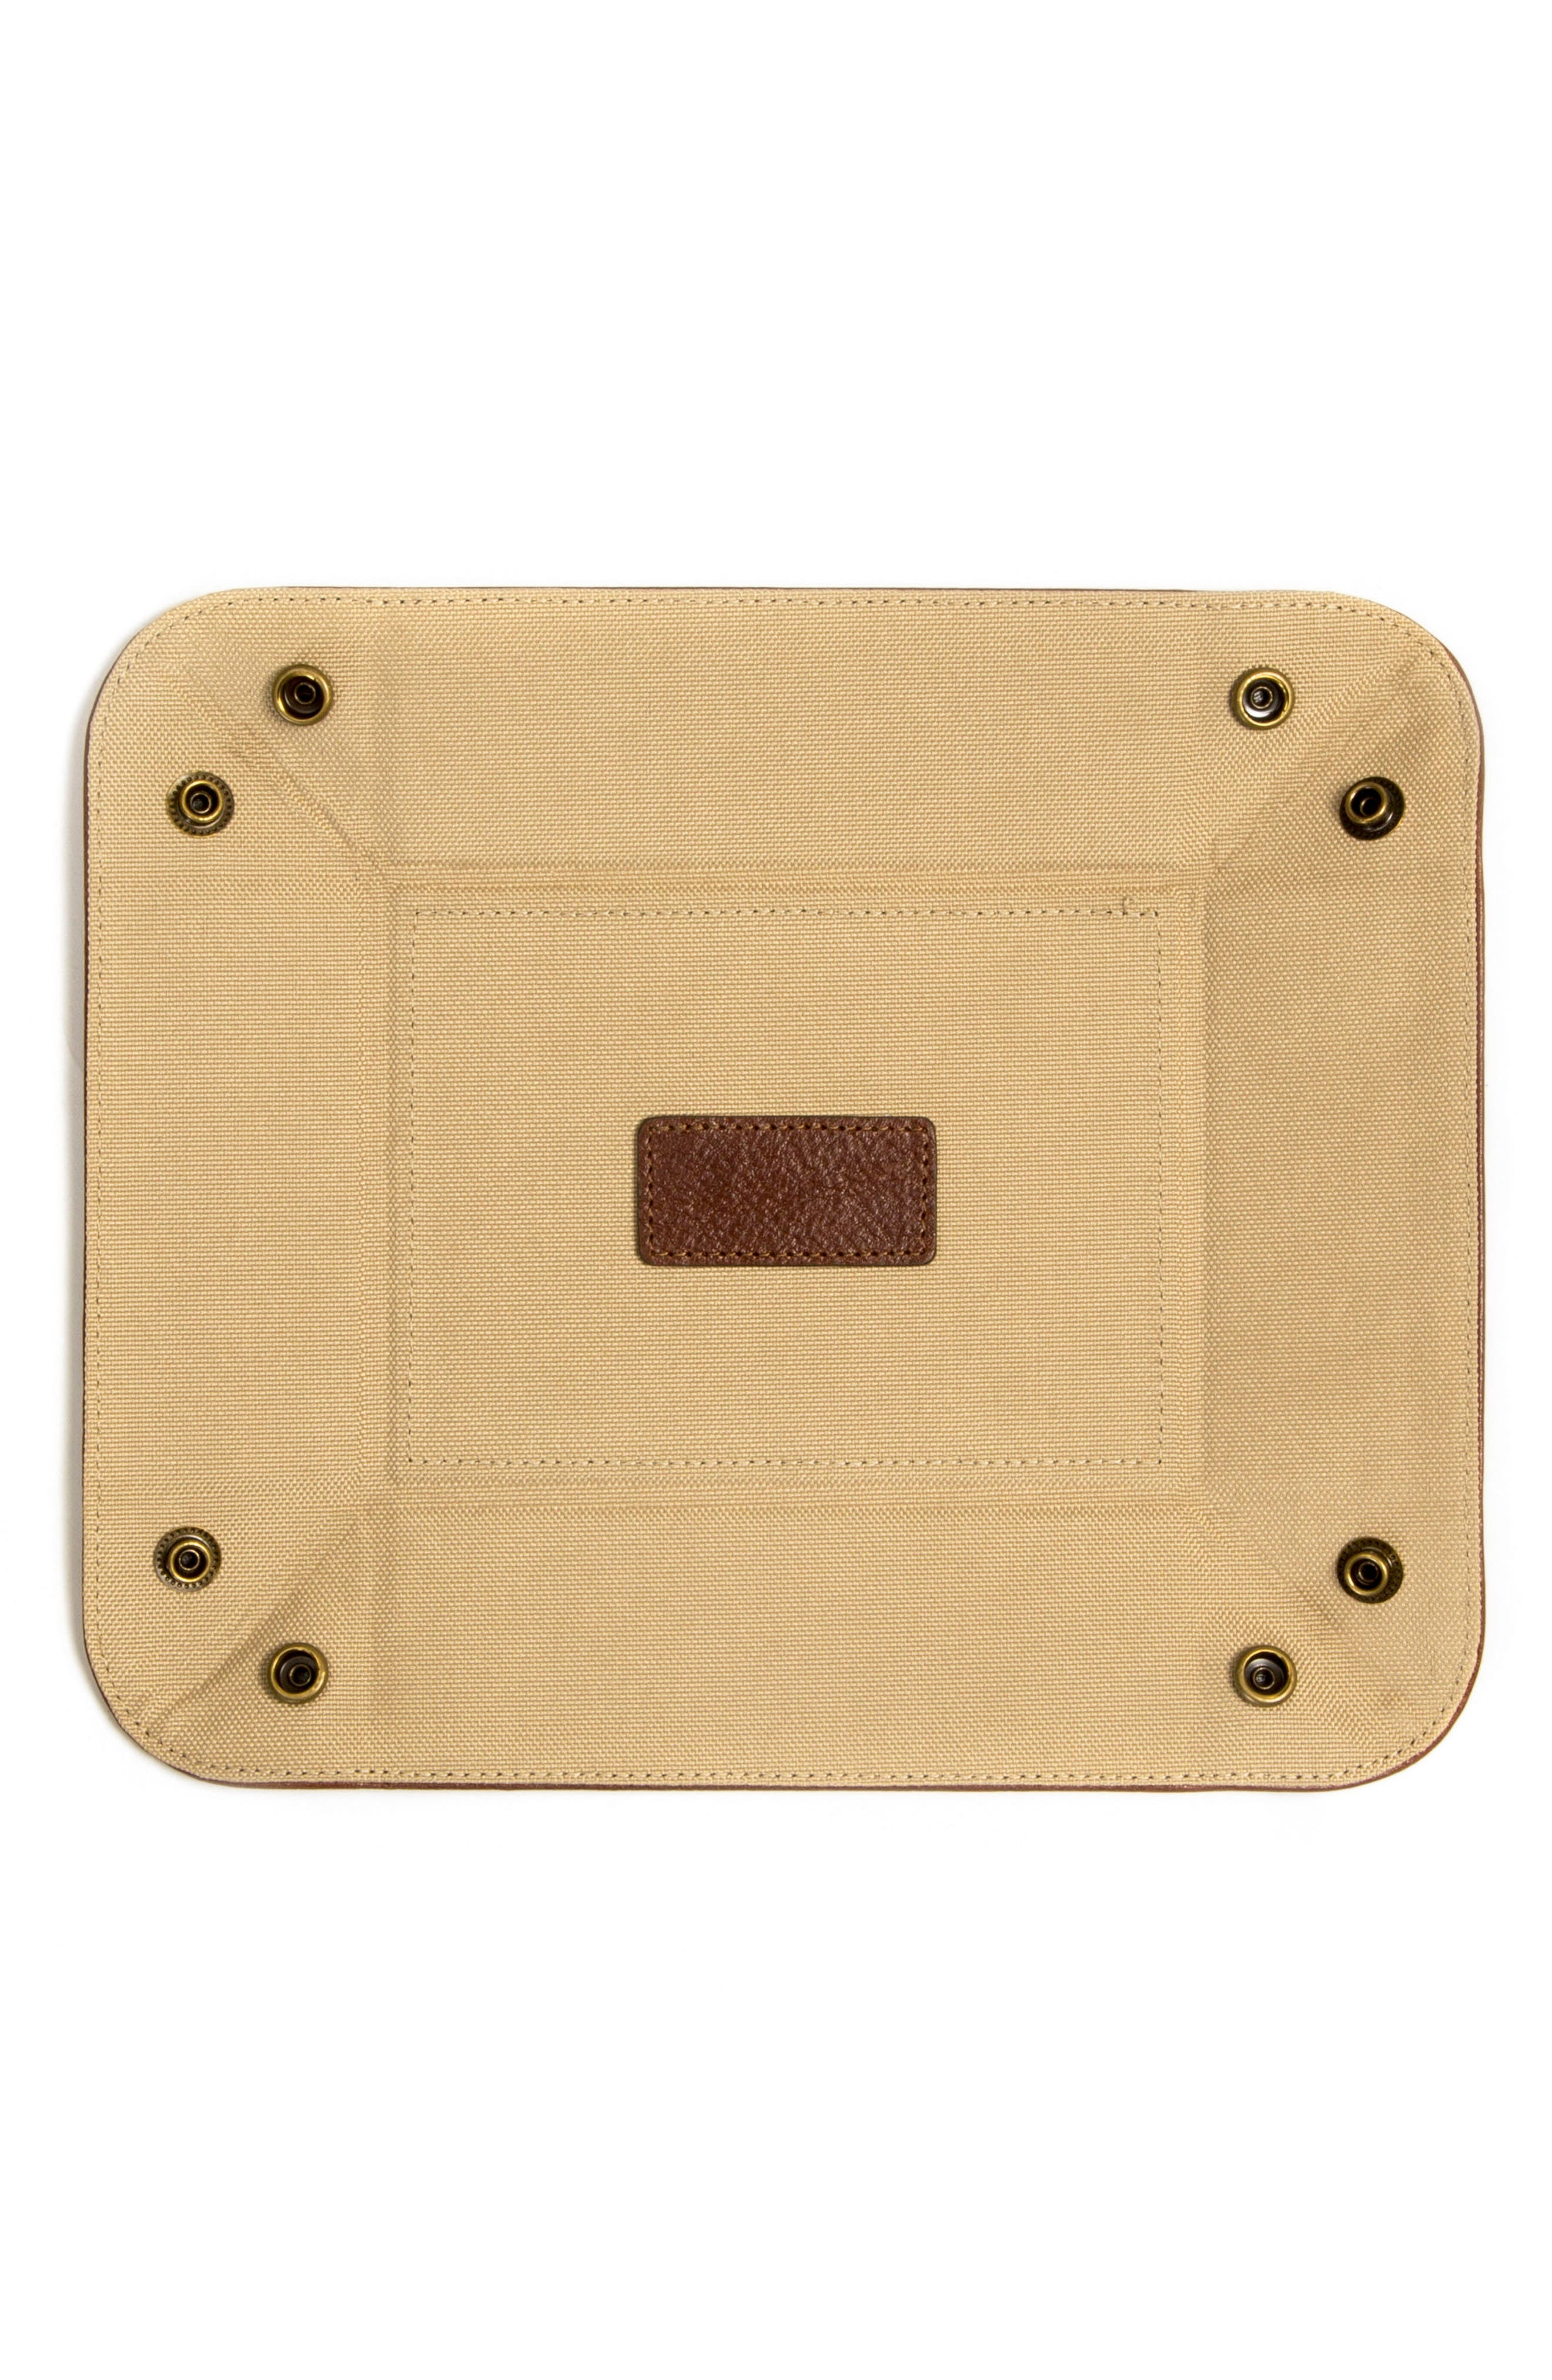 Becker Catchall Tray,                             Alternate thumbnail 4, color,